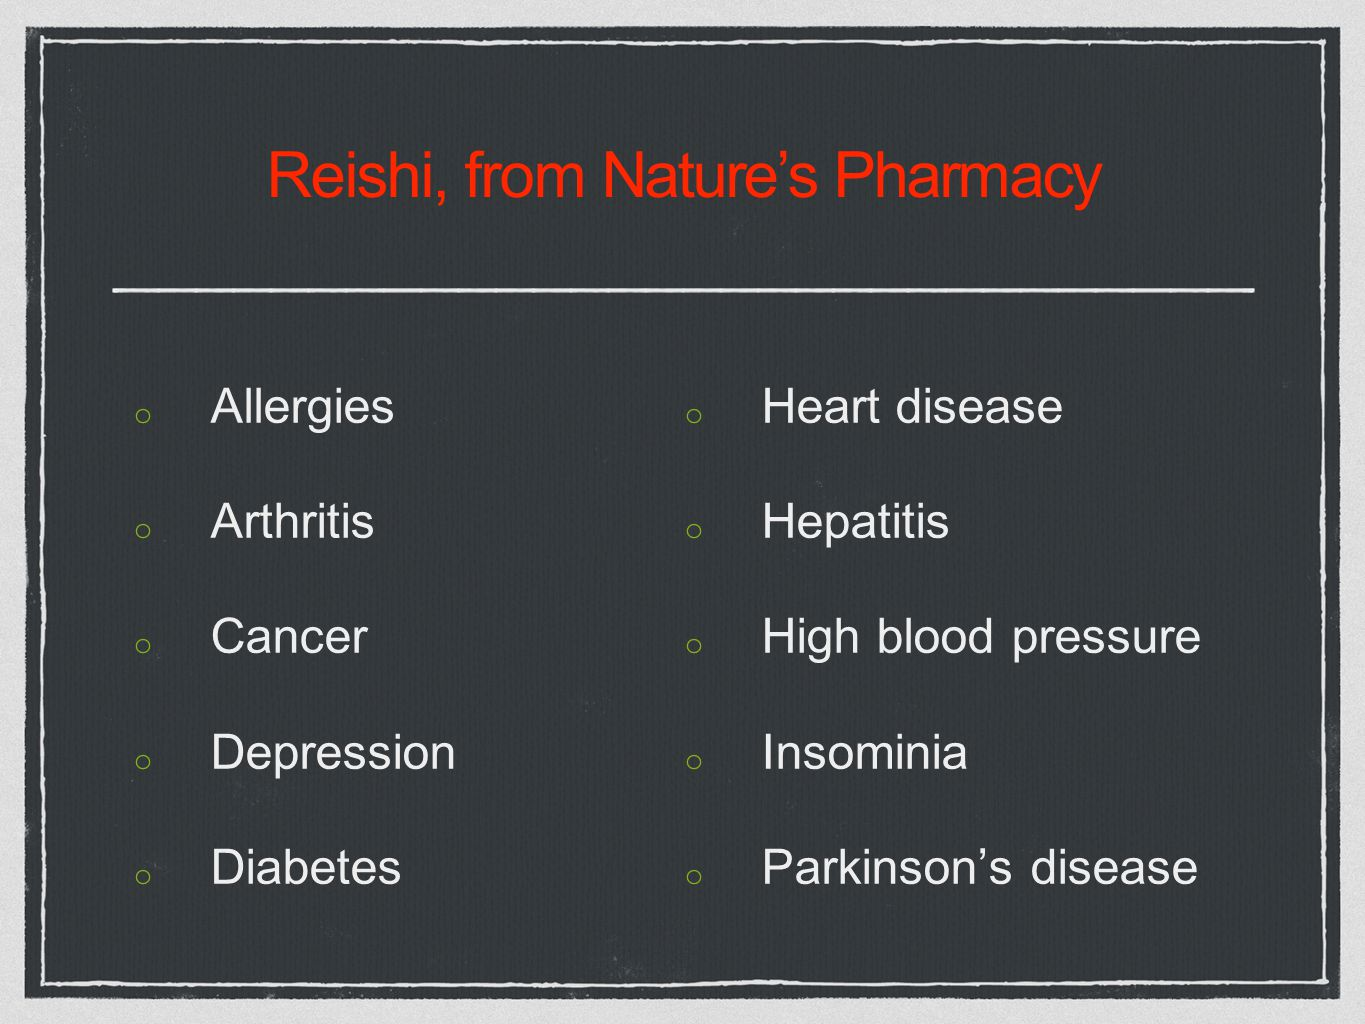 Reishi, from Nature's Pharmacy o Allergies o Arthritis o Cancer o Depression o Diabetes o Heart disease o Hepatitis o High blood pressure o Insominia o Parkinson's disease